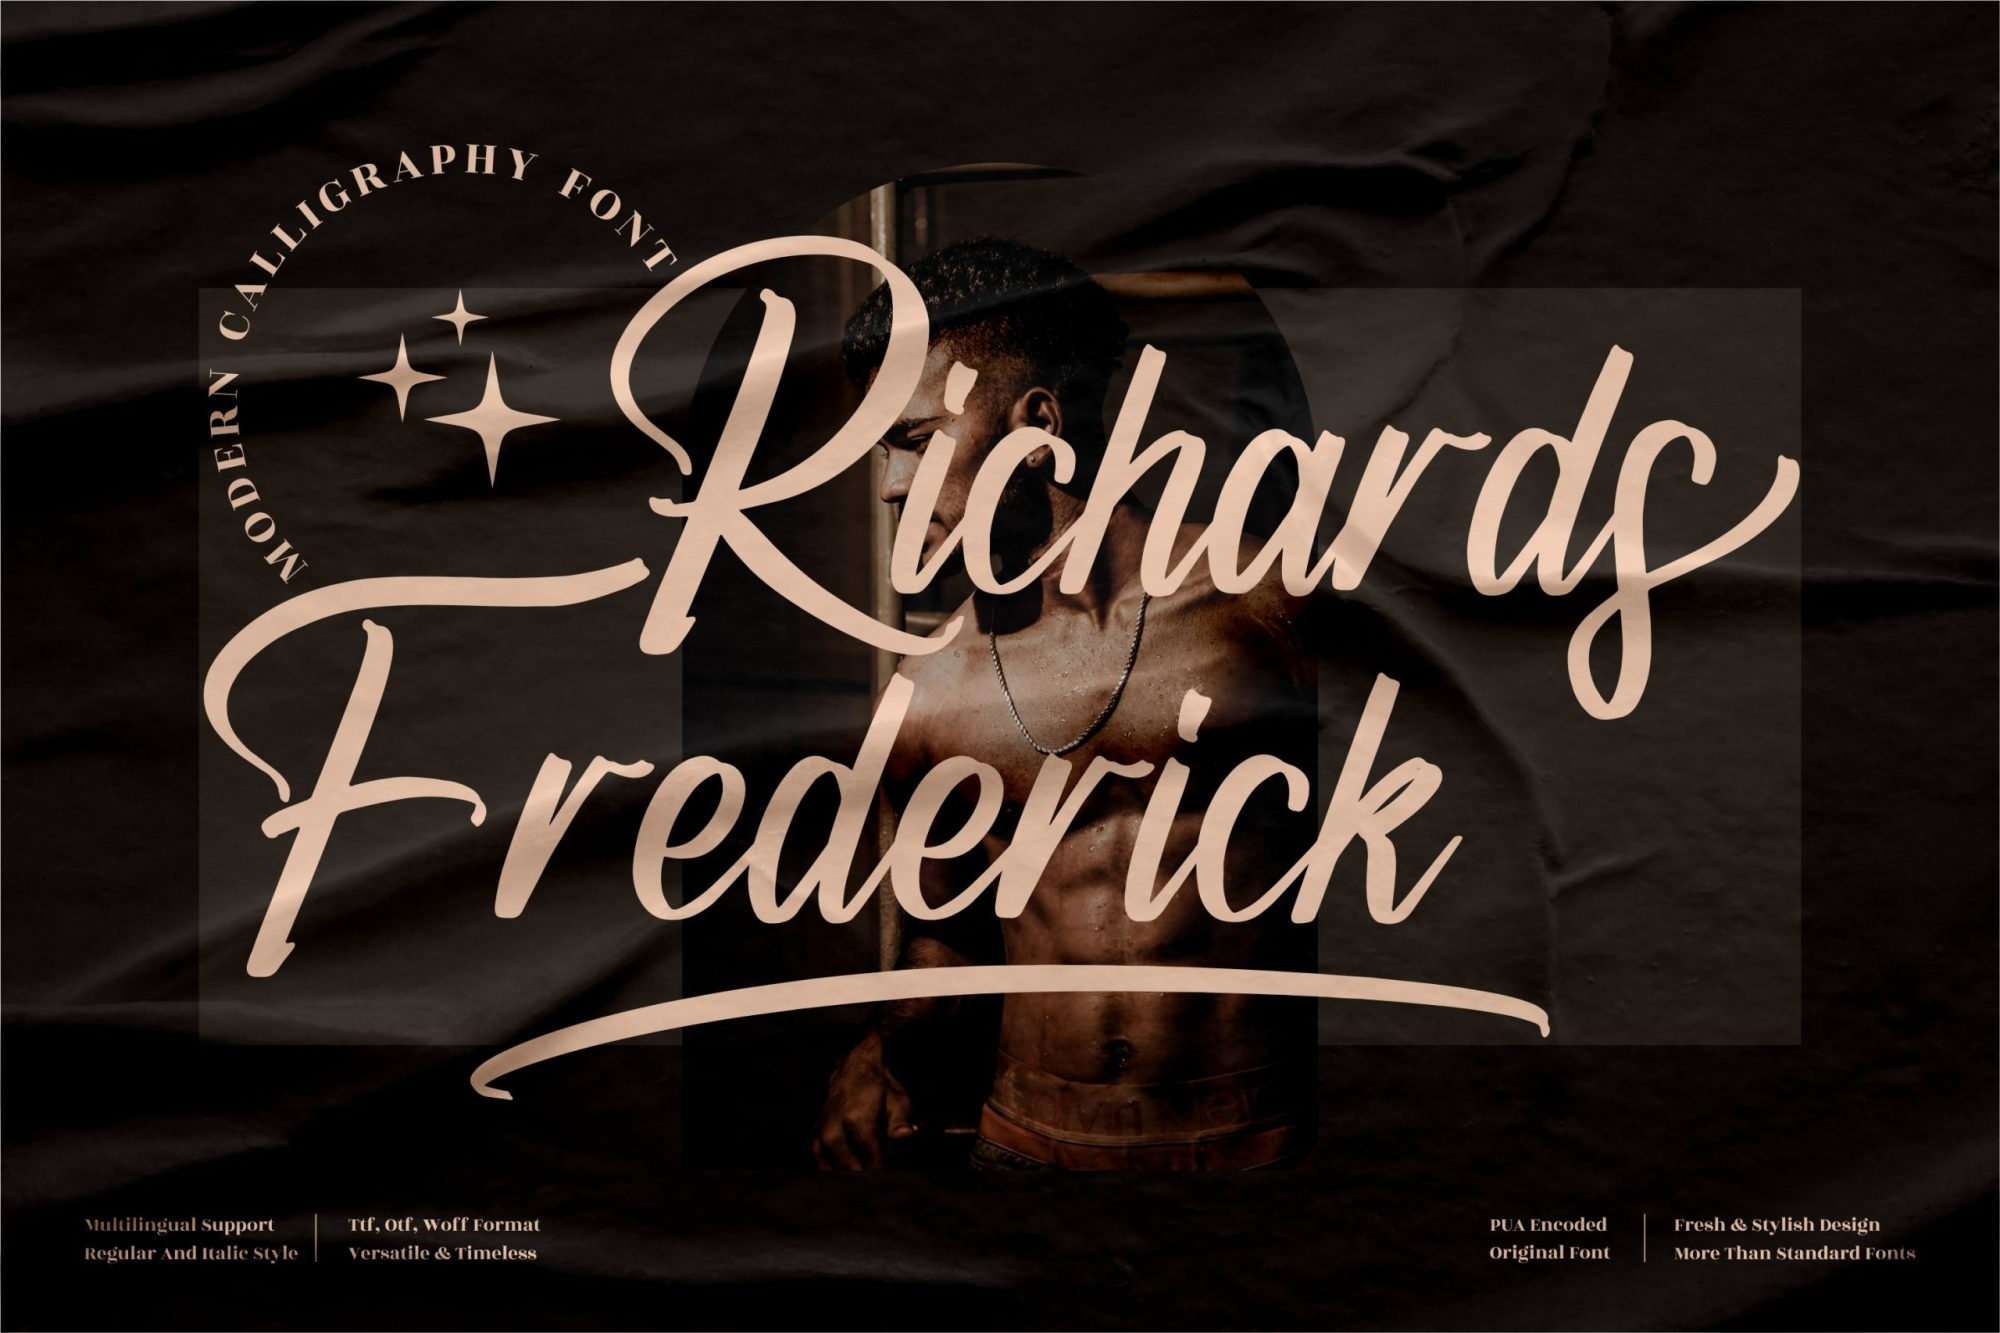 Richards-Frederick-Calligraphy-Font-1-scaled